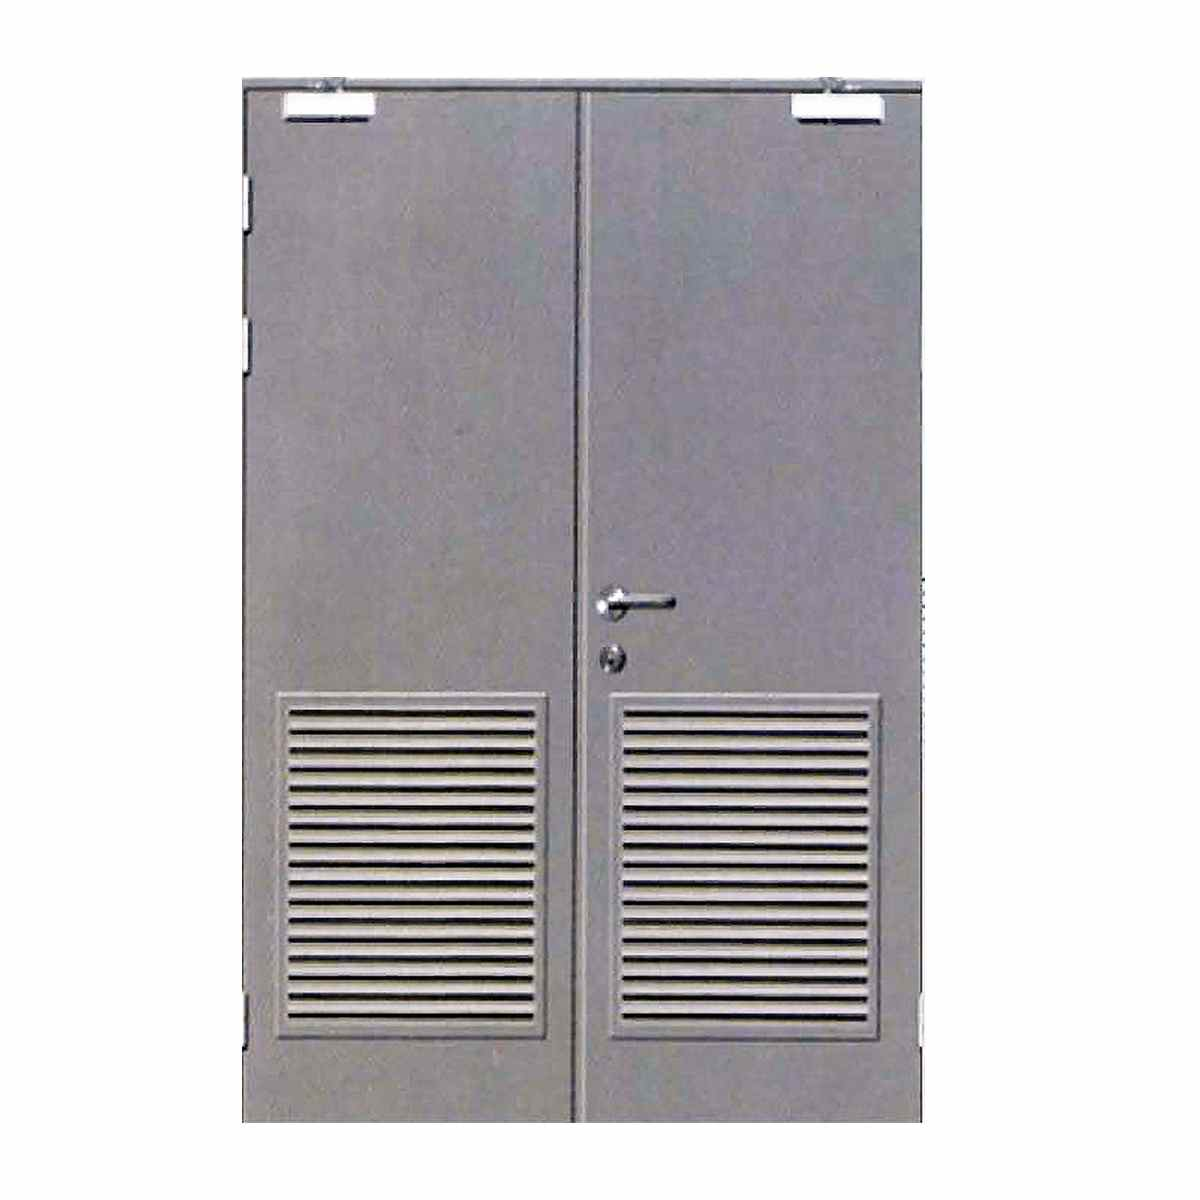 INDUSTRIAL DOORS WITH LOUVERS